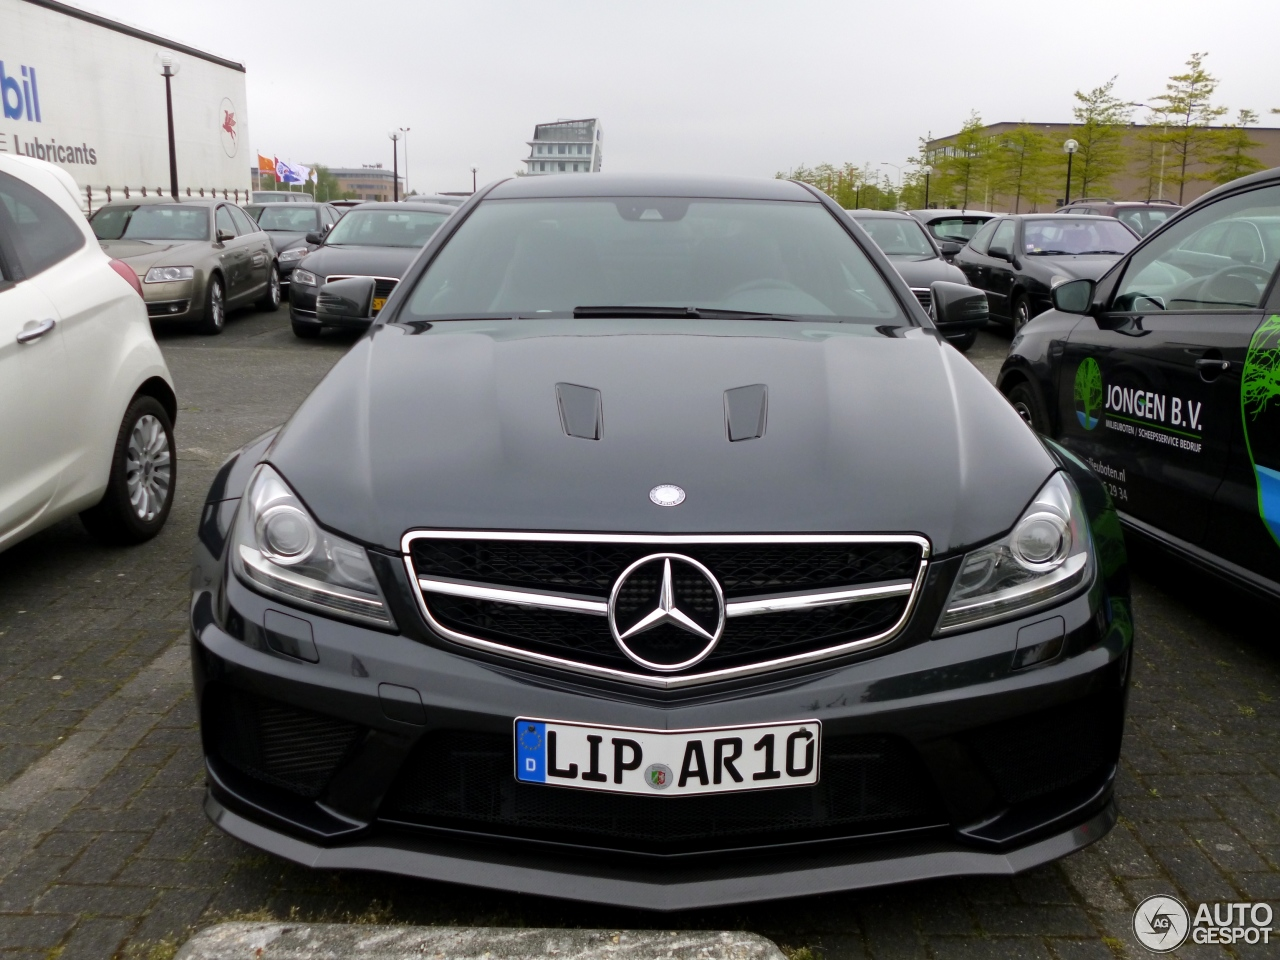 Mercedes Benz C 63 Amg Coup Black Series 29 May 2013 Autogespot Lubricants